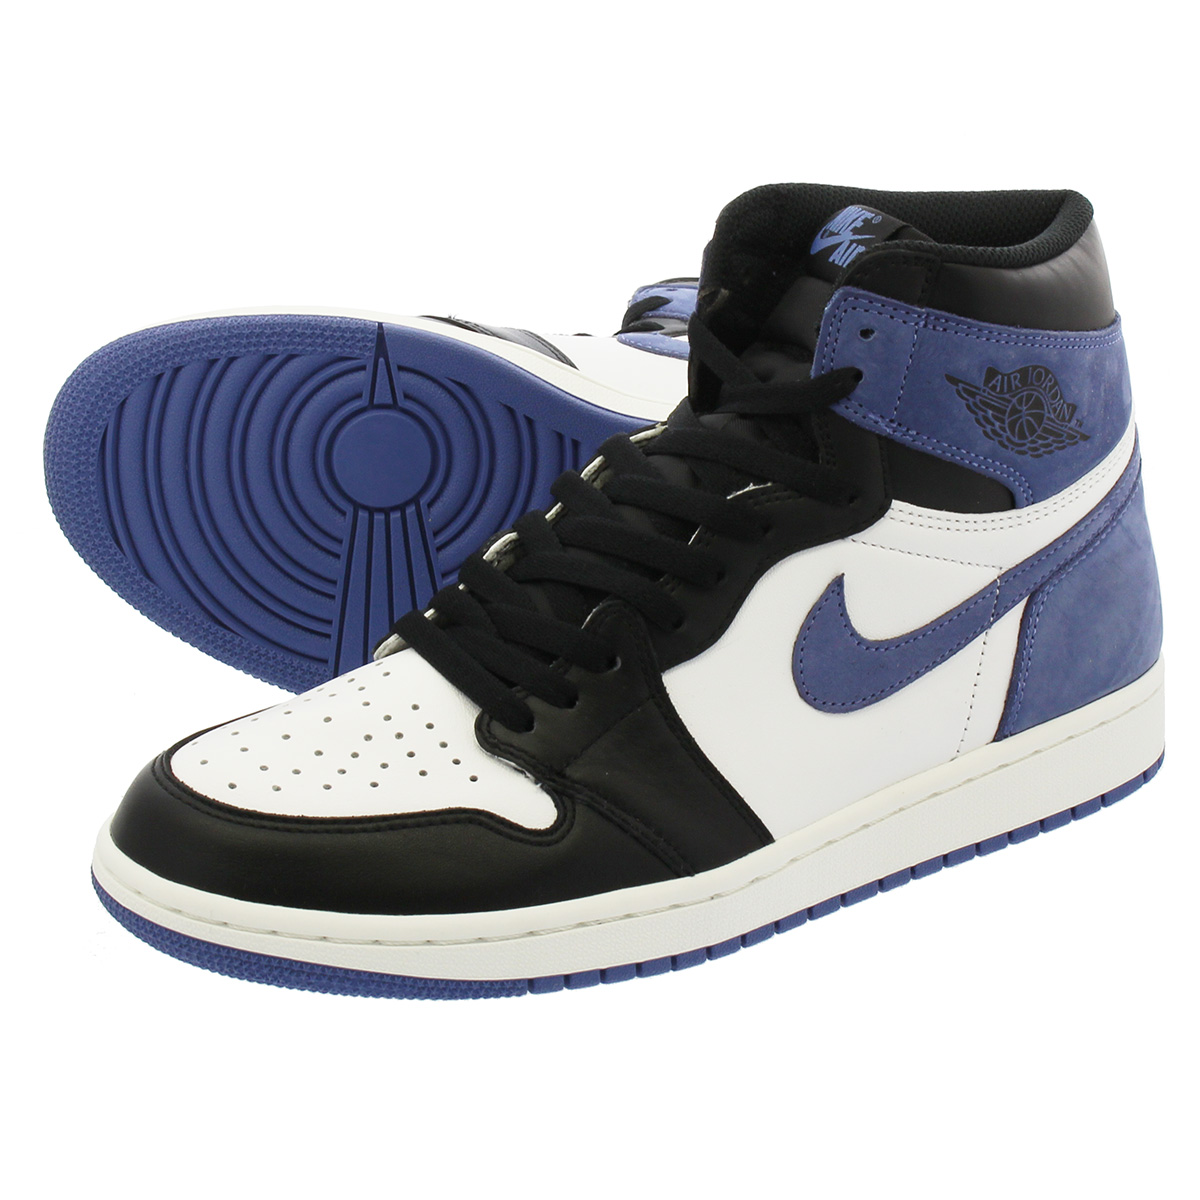 NIKE AIR JORDAN 1 RETRO HIGH OG 【HAND IN THE GAME COLLECTION】 ナイキ エア ジョーダン 1 レトロ ハイ OG SUMMIT WHITE/BLUE MOON/BLACK 555088-115